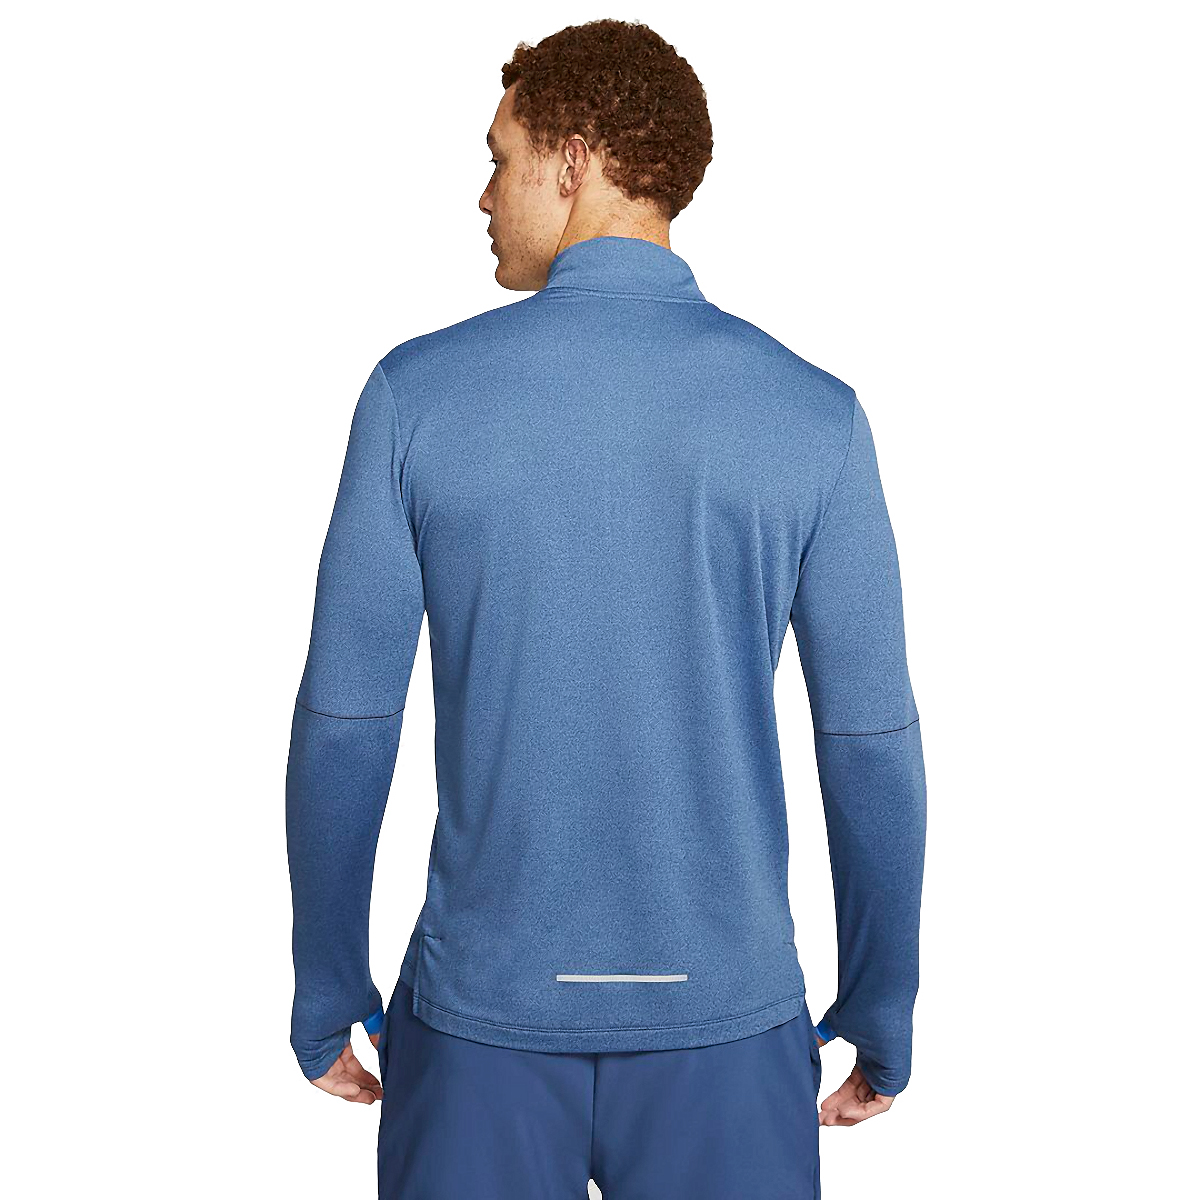 Men's Nike Element Half Zip 3.0 - Color: Obsidian/Heather - Size: XS, Obsidian/Heather, large, image 2